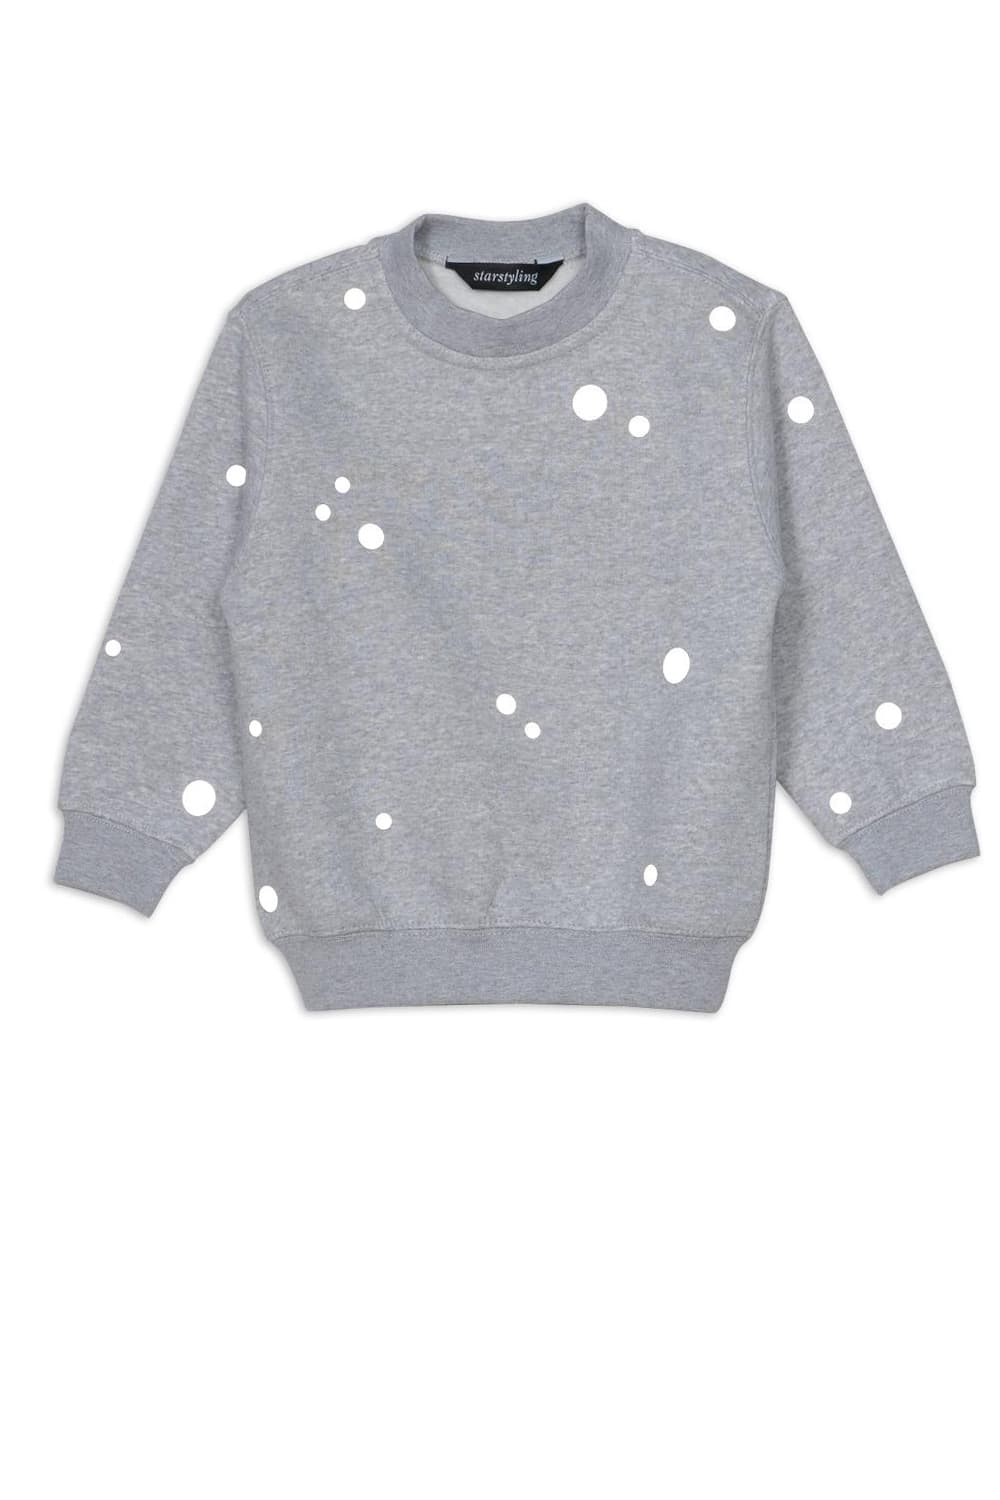 starstyling Grey 7 to 11 Years Reflective Dots Sweater